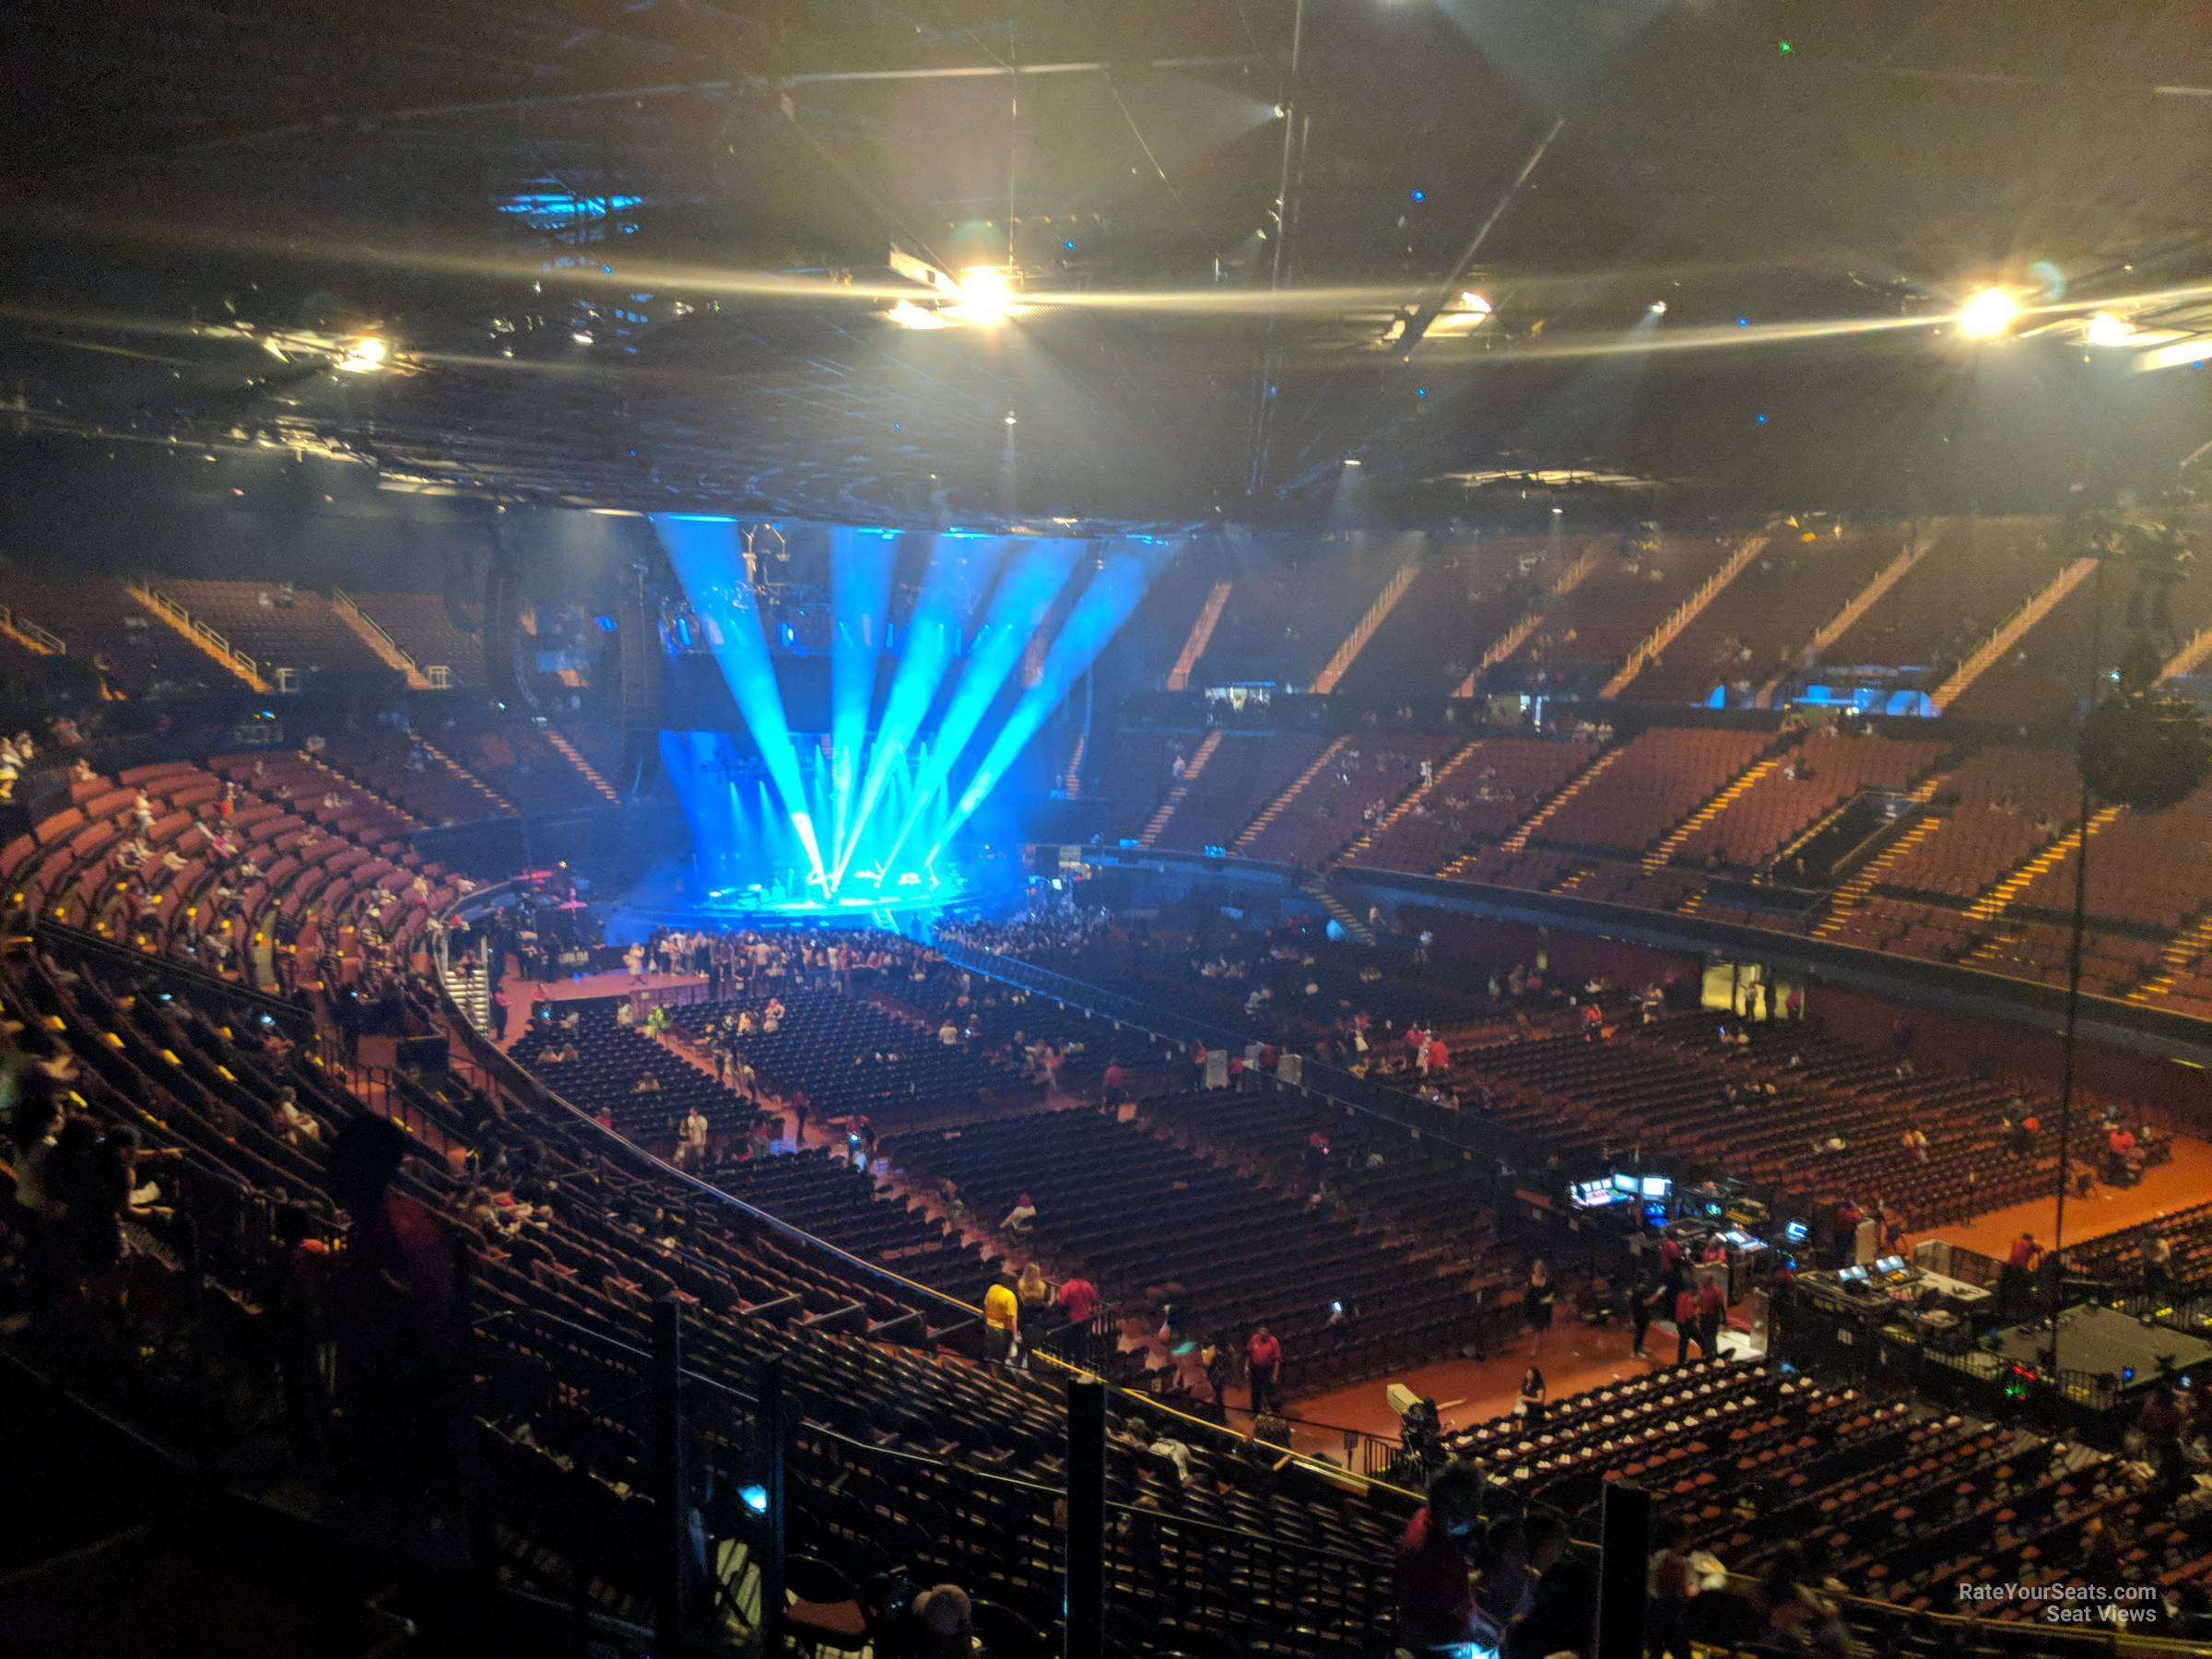 Section 232 At The Forum Rateyourseats Com